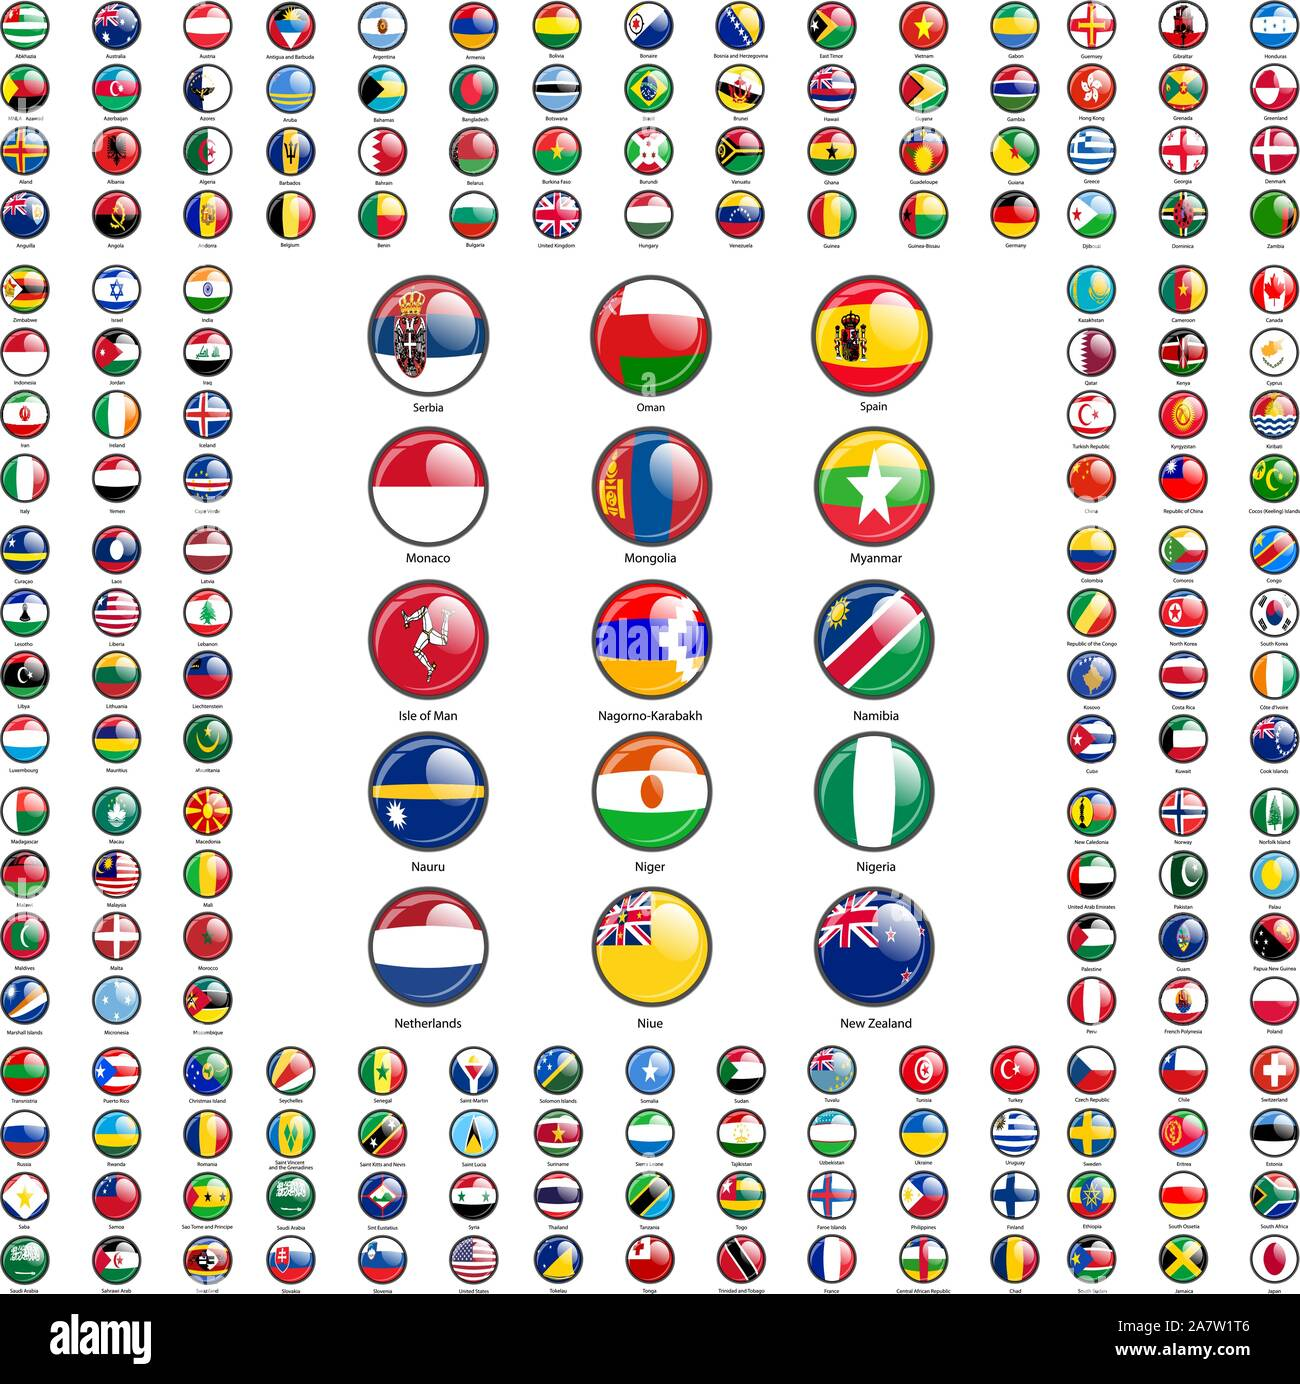 Set circle icon Flags of world sovereign states signed by the countries names. Stock Vector